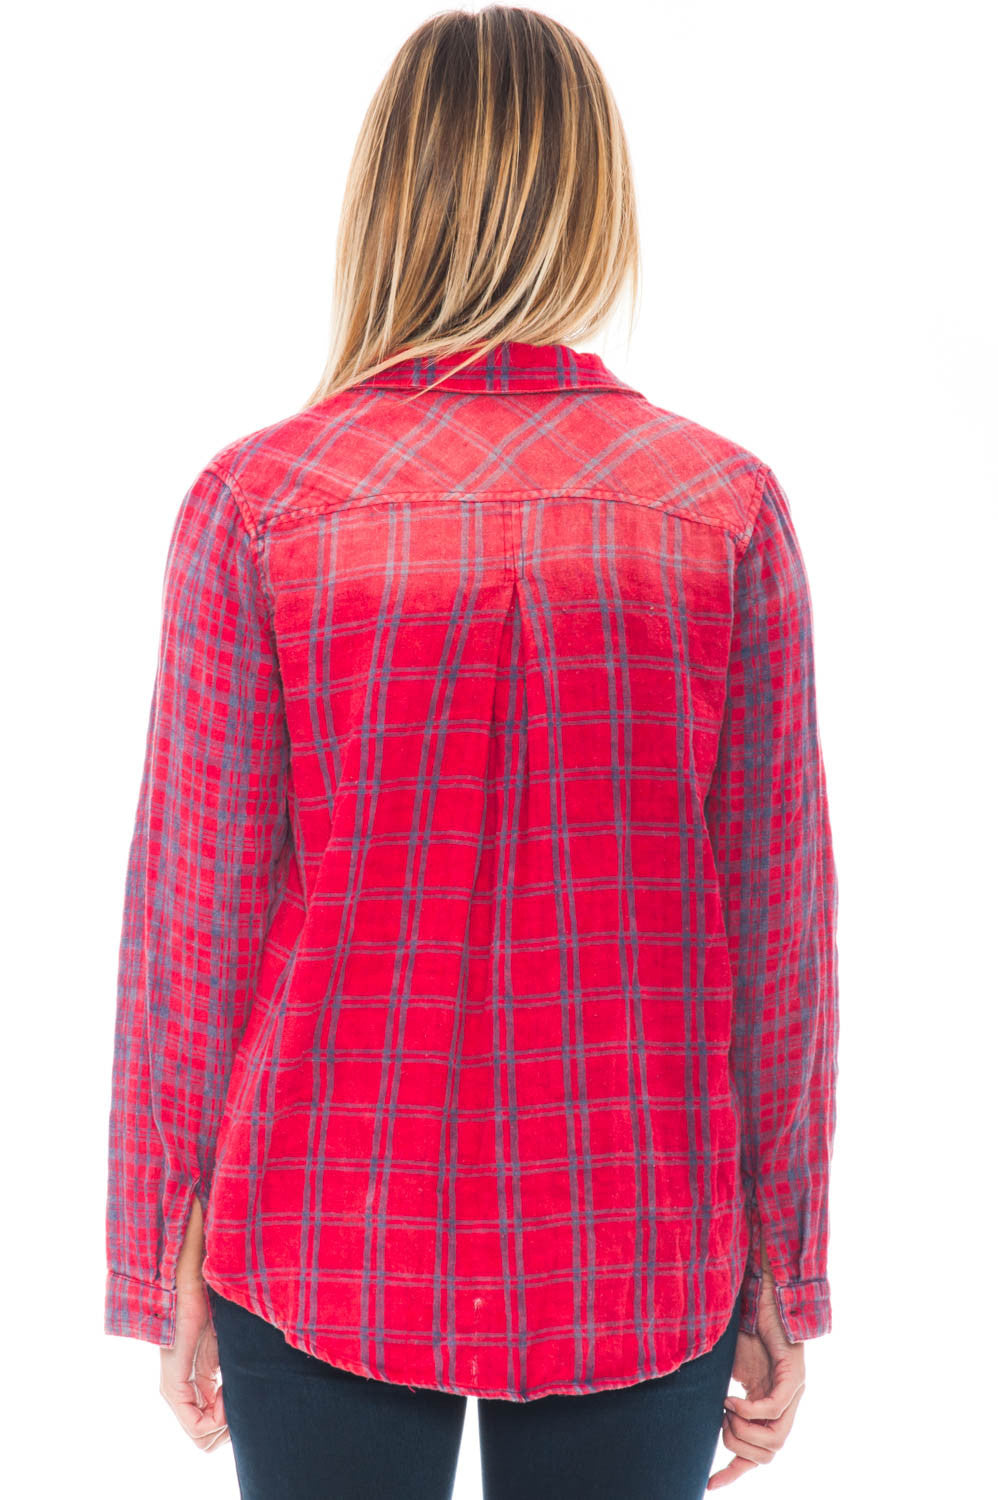 Shirt - Dye Collared Flannel By Paper Crane